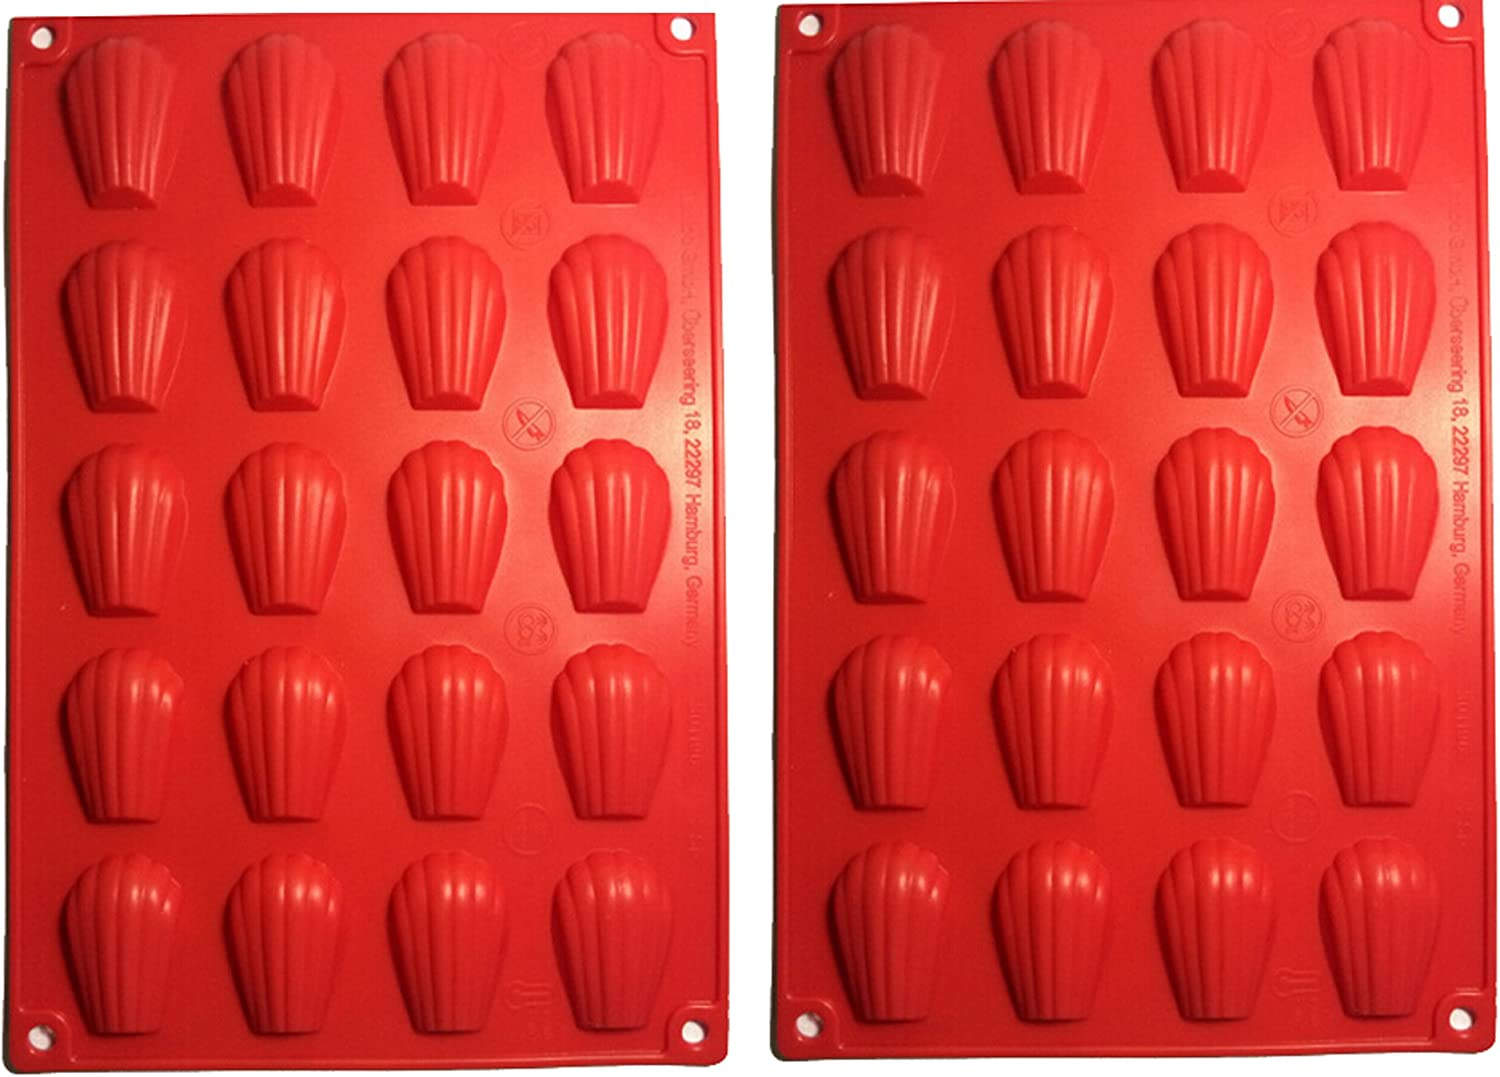 Fasmov 20-Cavity Silicone Madeleine Pan Cookie Mold,Baking Mold Handmade Soap Moulds and more,Set of 2 by Fasmov